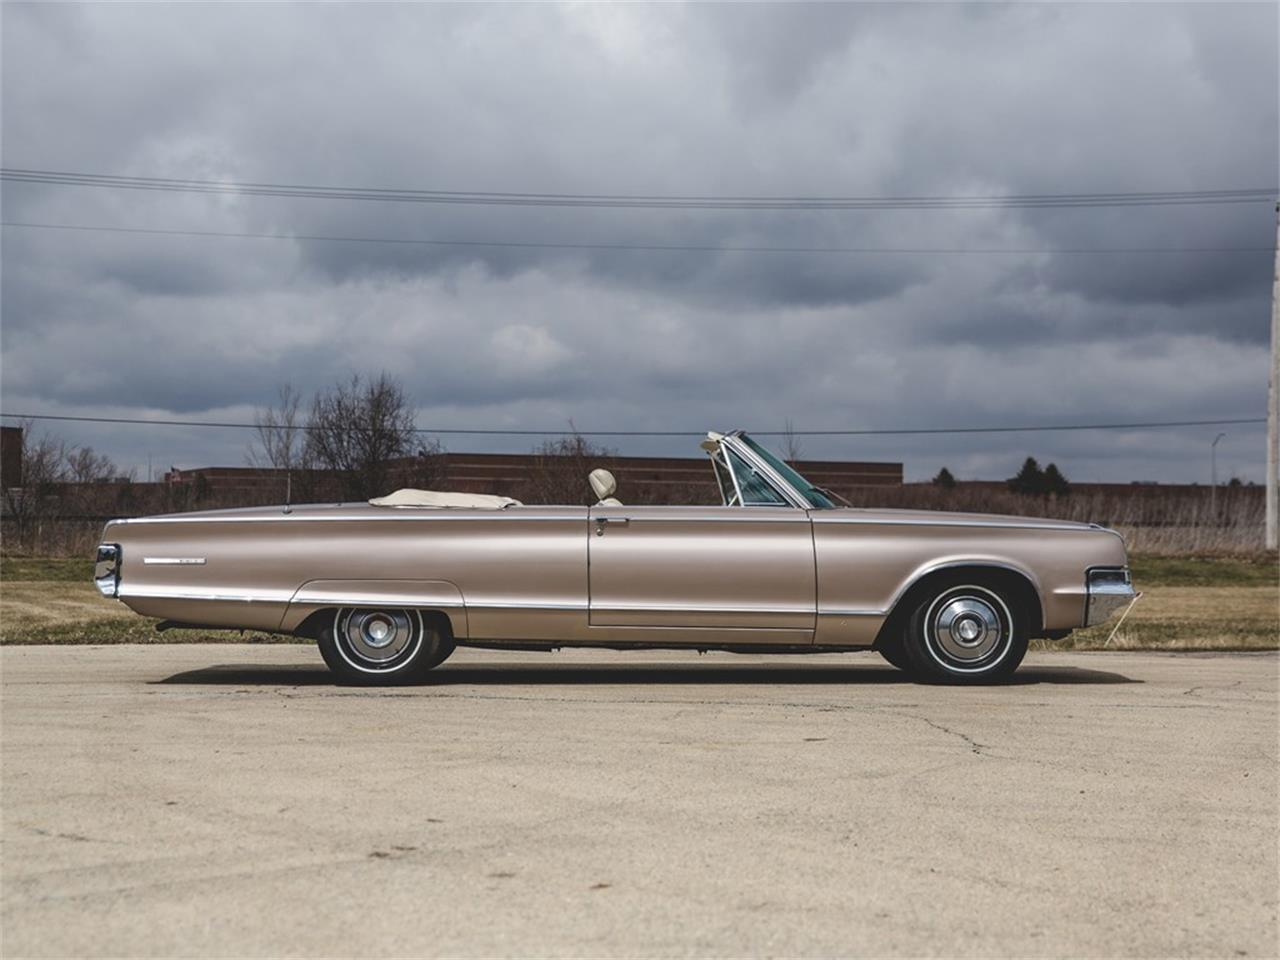 Large Picture of '65 Chrysler 300L Convertible located in Auburn Indiana Auction Vehicle Offered by RM Sotheby's - N8S4